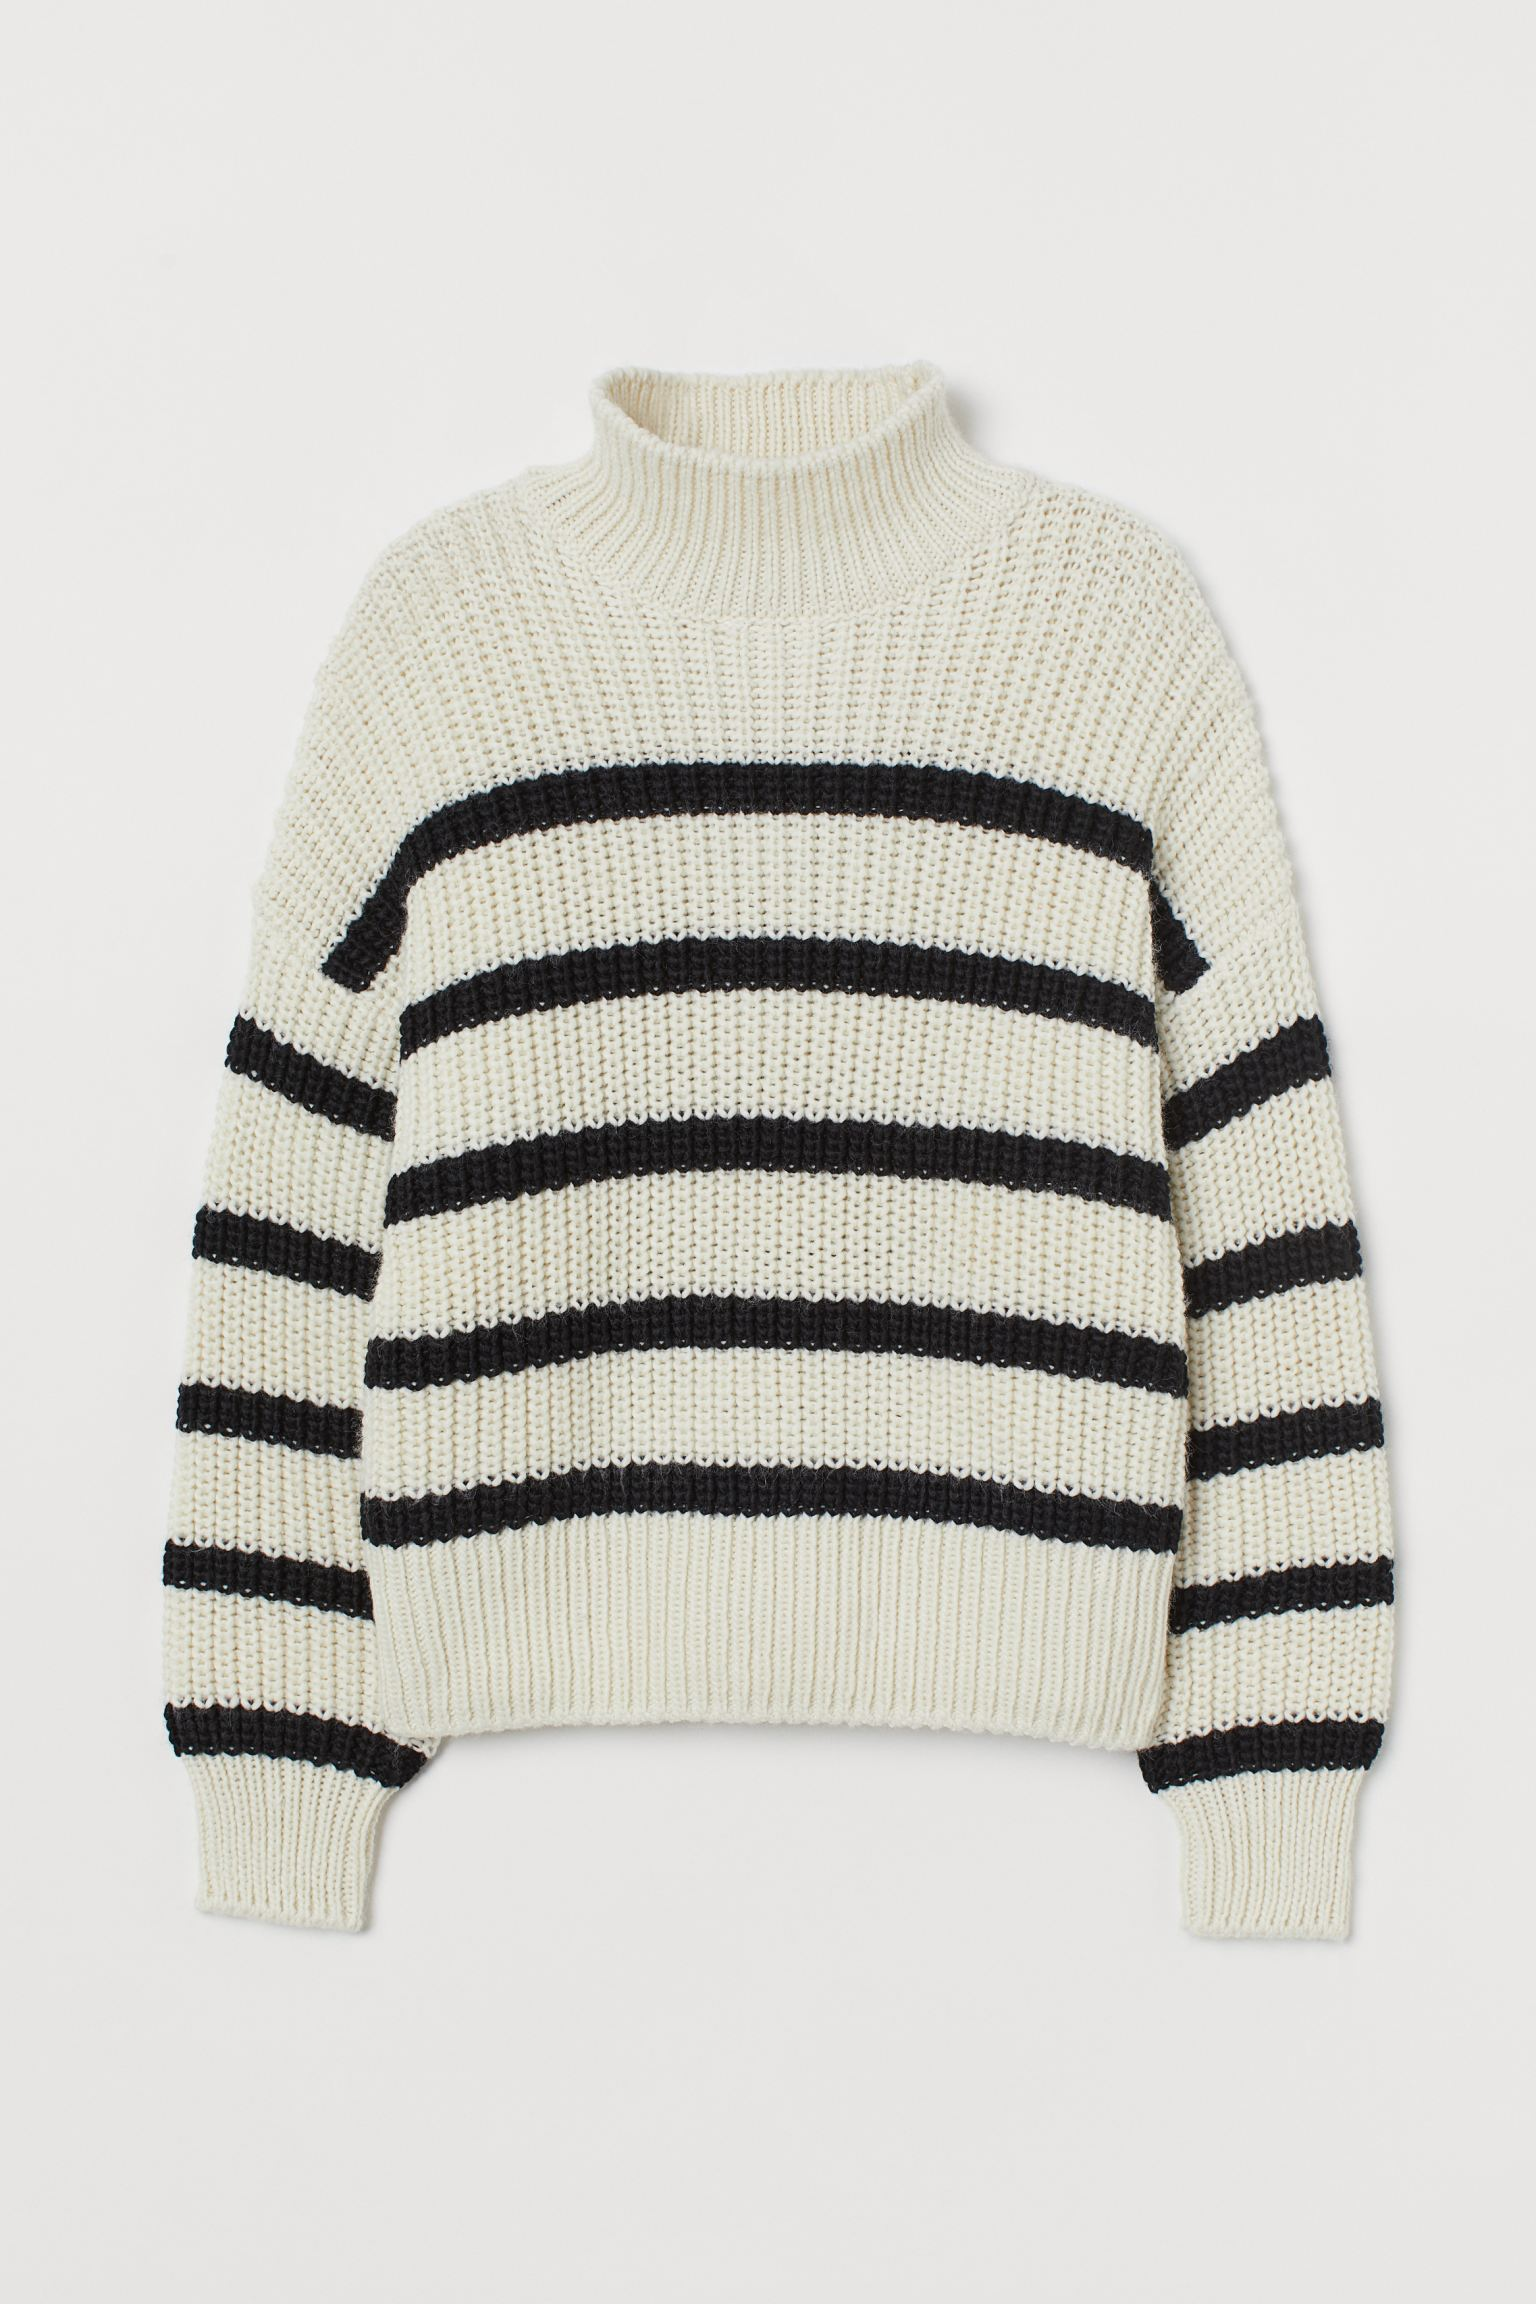 Boxy sweater in soft knit with wool in the weft. Model with ribbed perkins collar, dropped shoulders and ribbed elastic cuffs and hem. Made from recycled polyester.